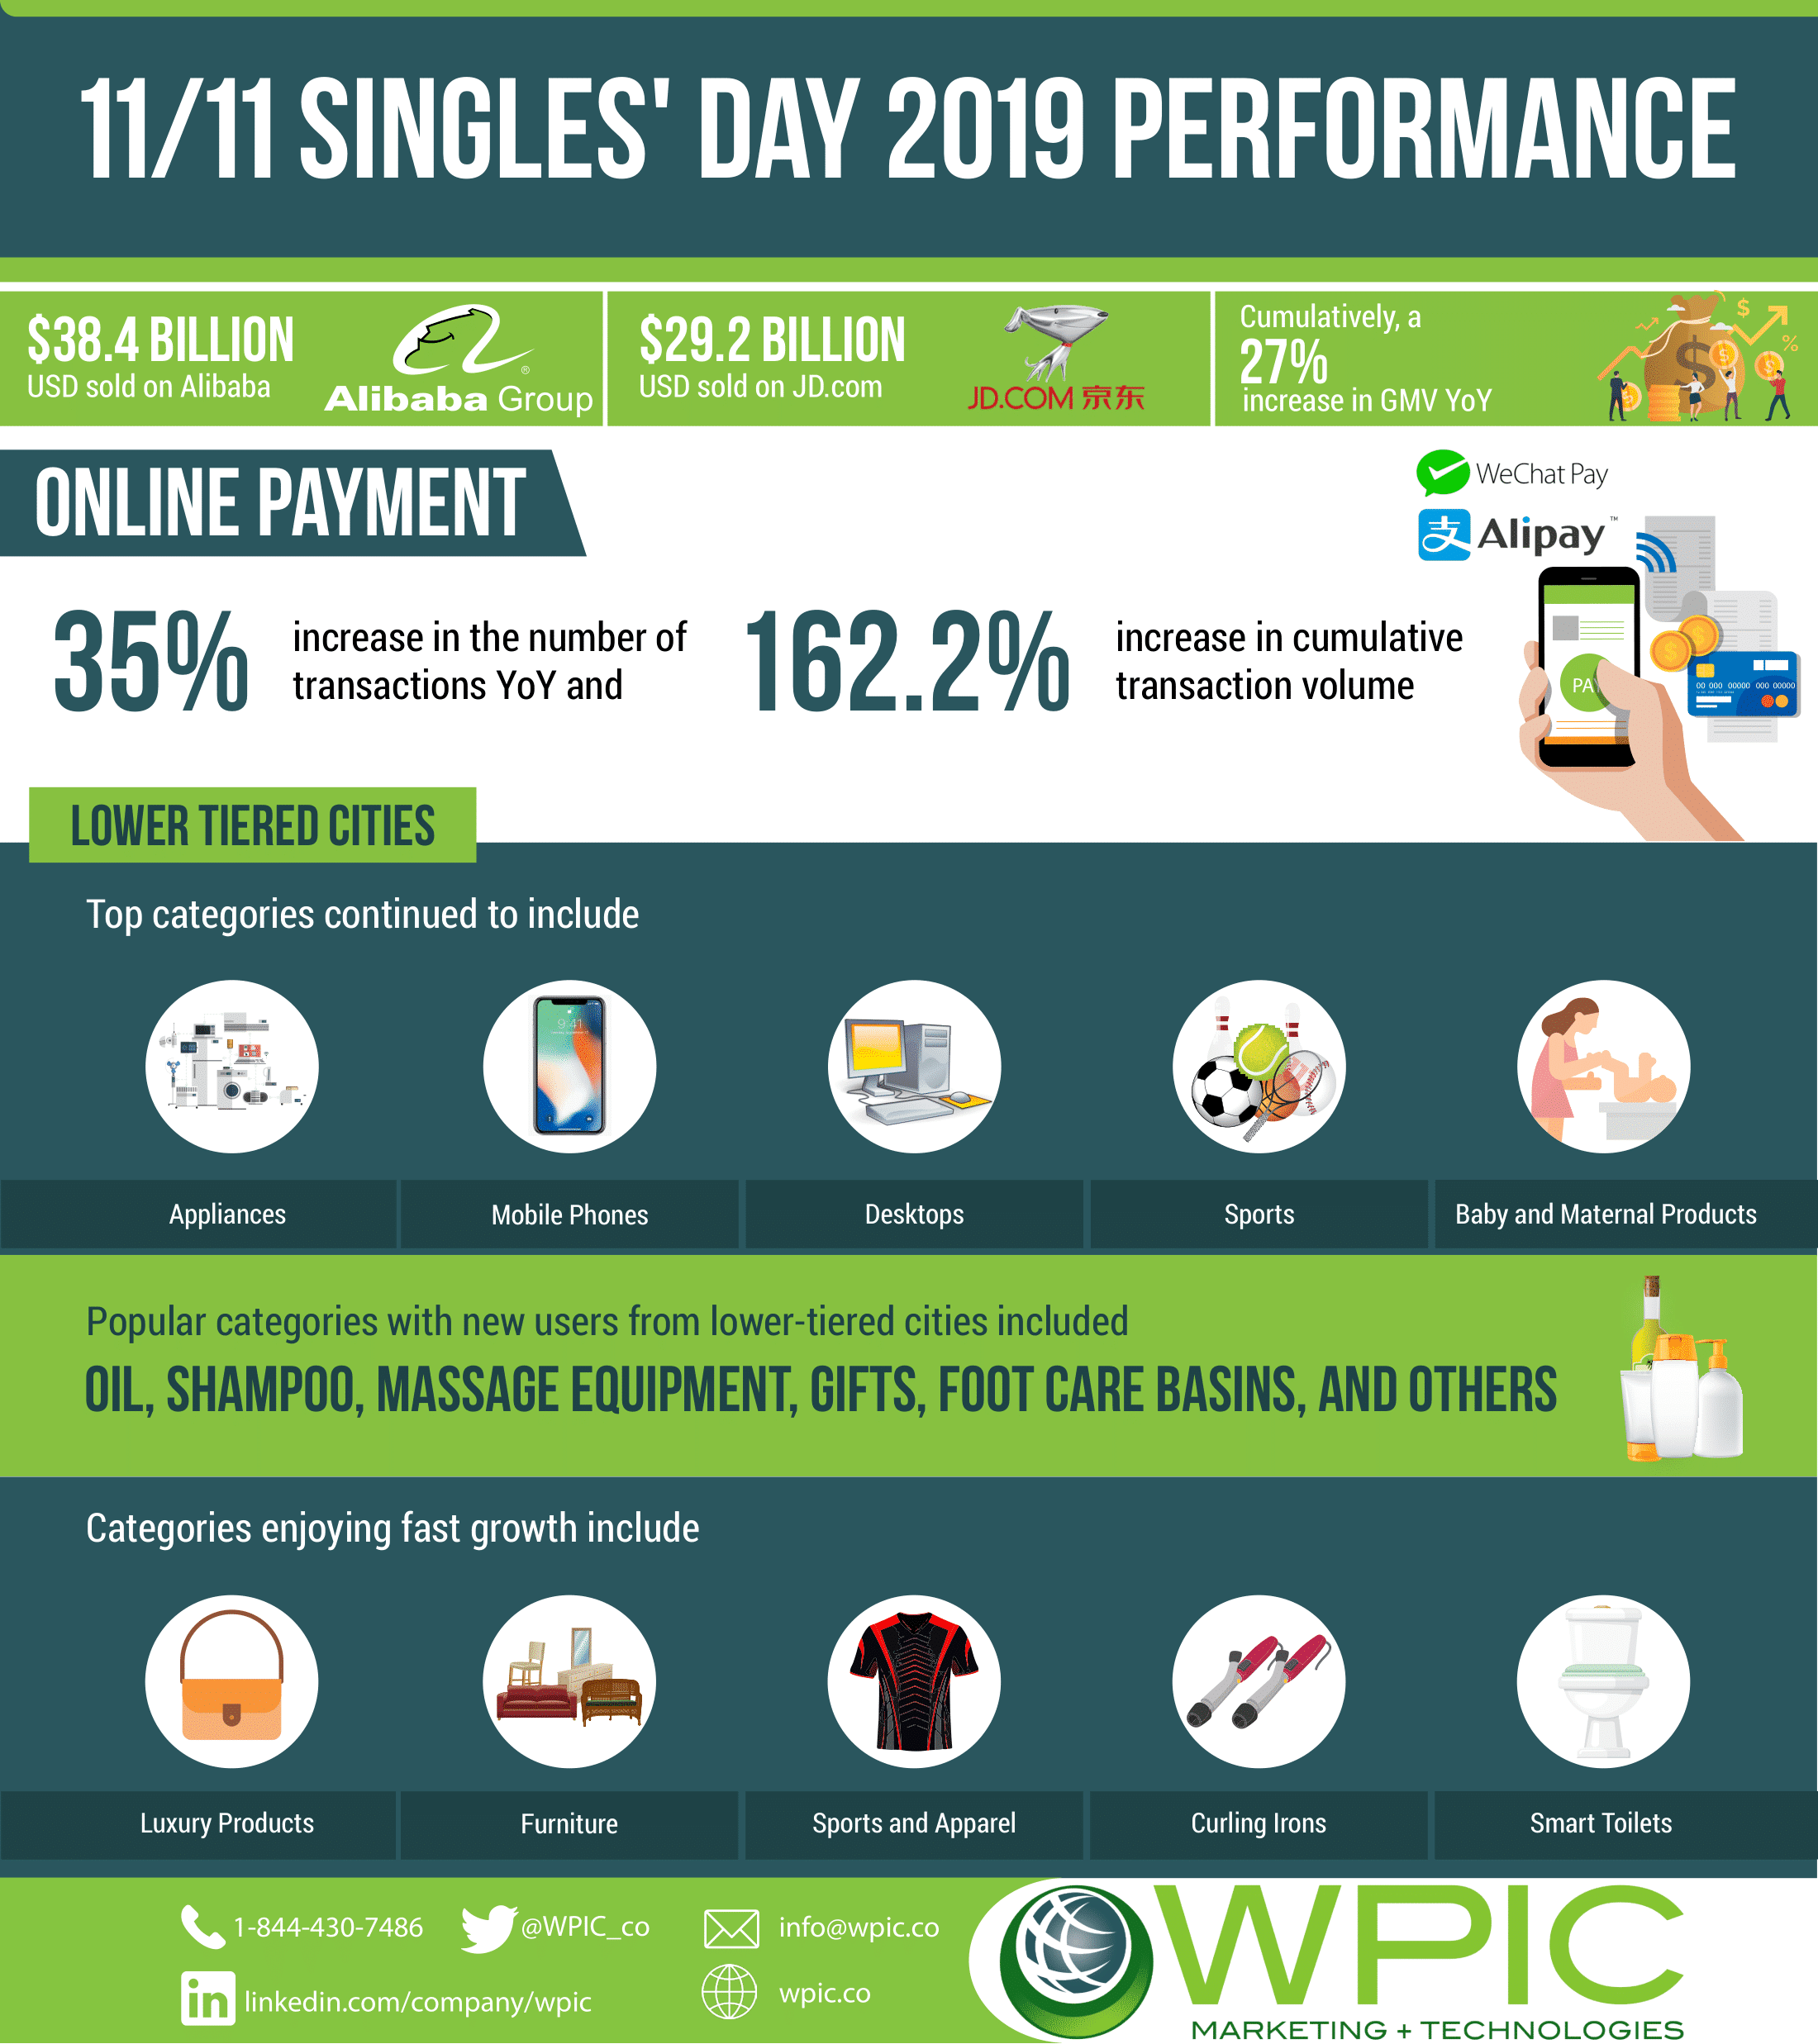 11/11 Singles' day 2019 performance infographic